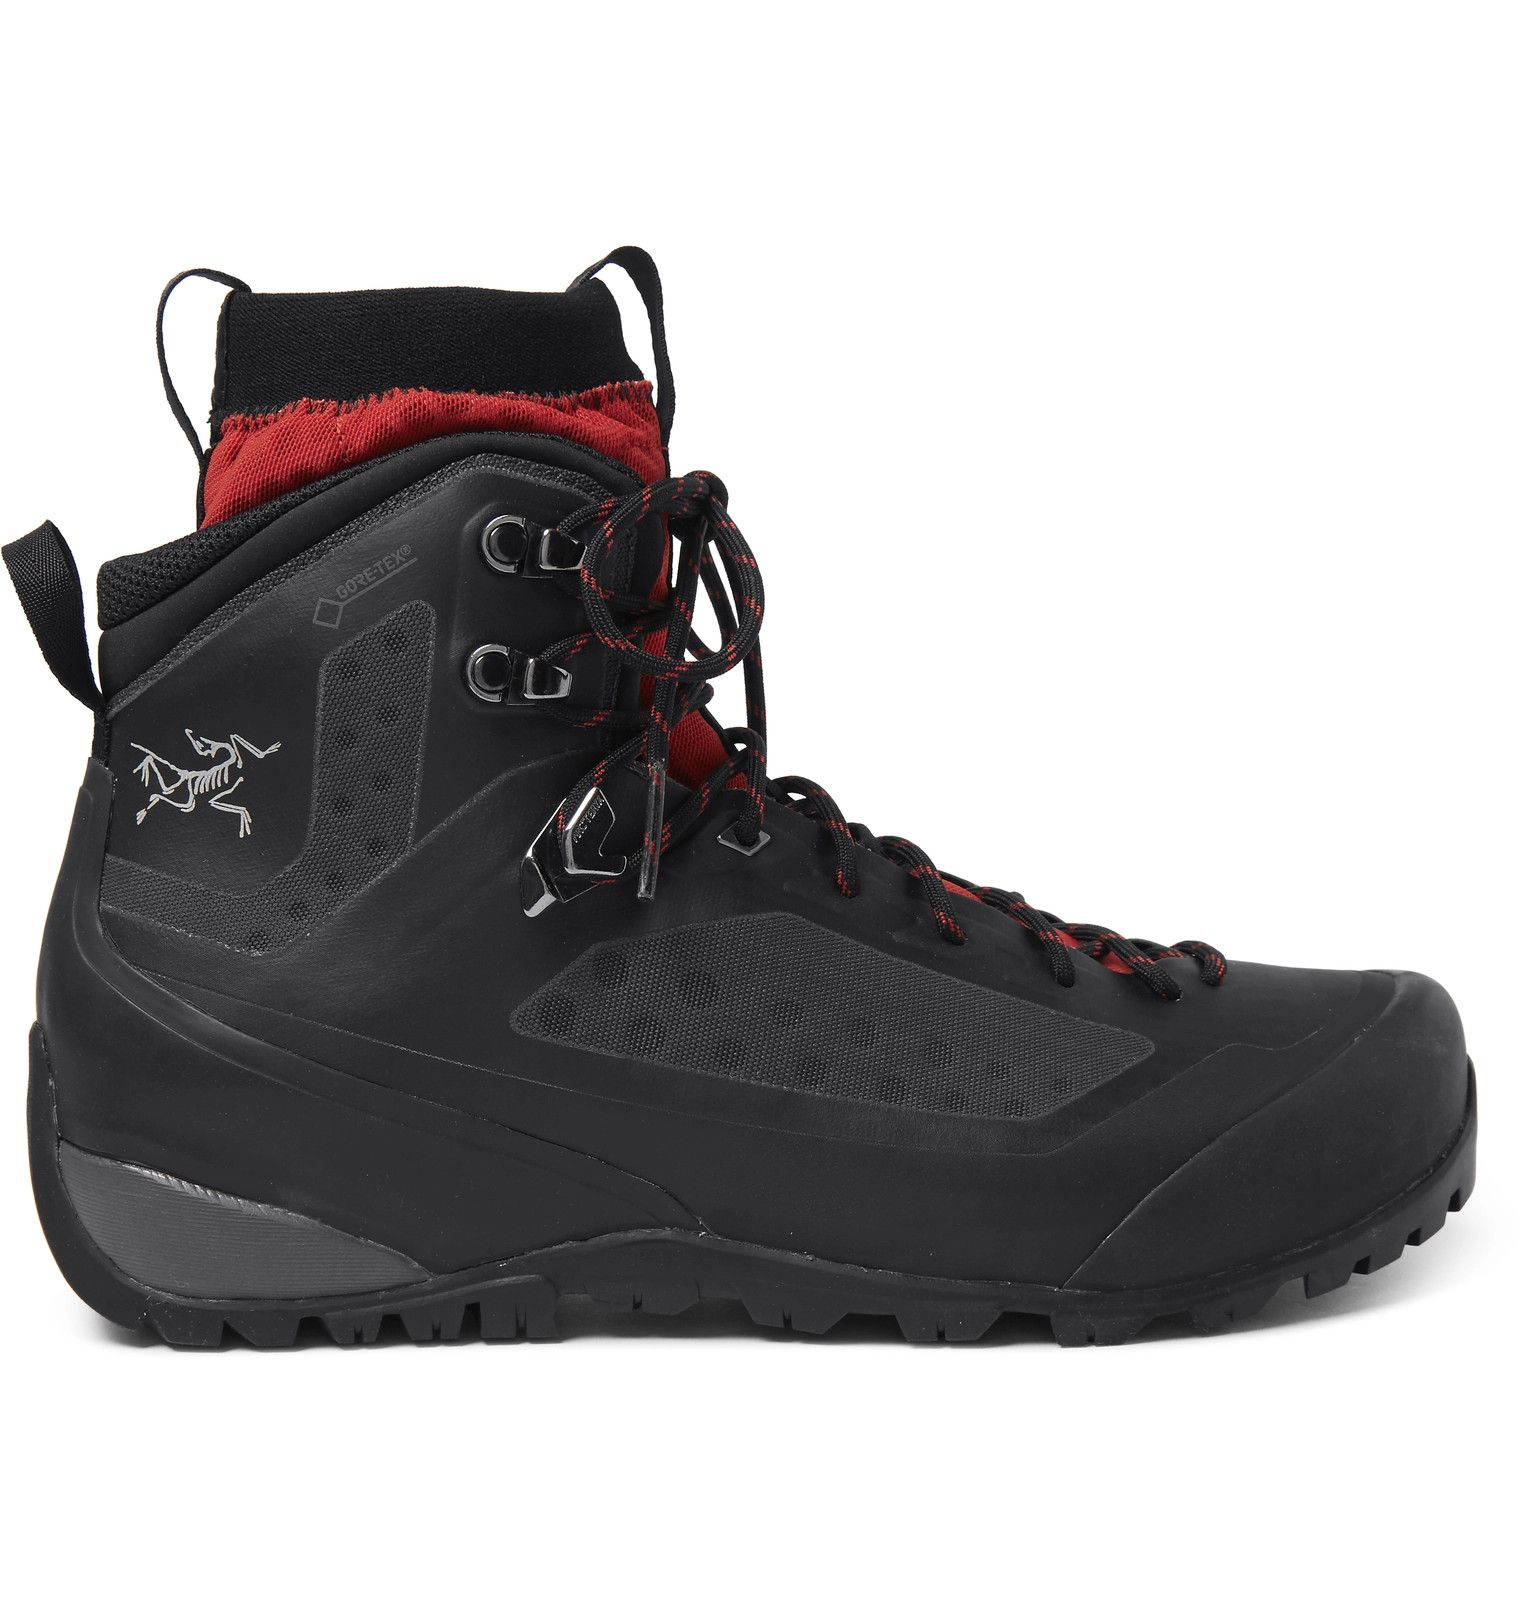 Pin by Idriz on Boots   Mens designer shoes, Hiking Boots, Shoes